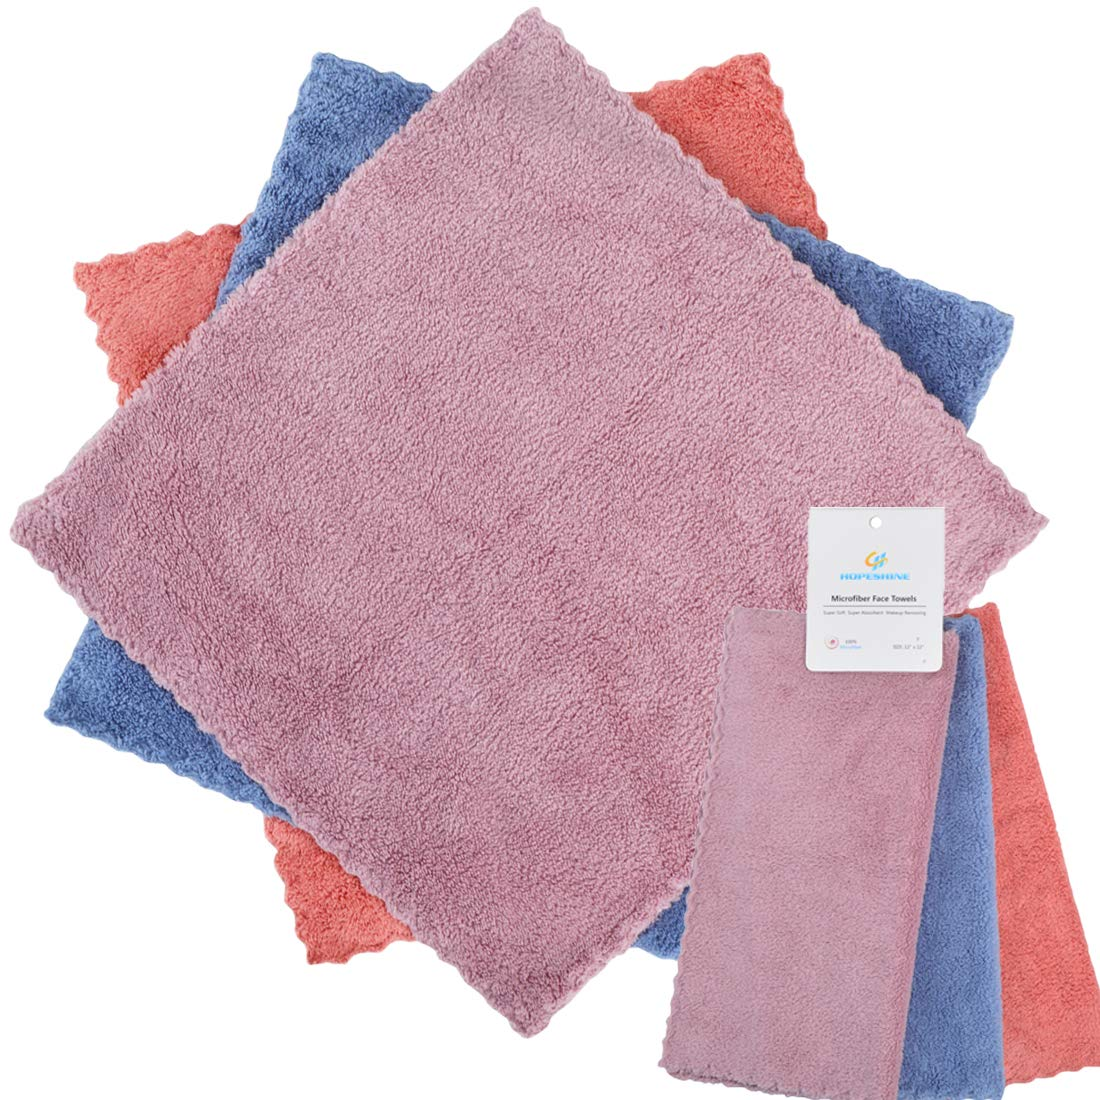 HOPESHINE Face Makeup Remover Cloths Reusable Microfiber Wash Cloth for Face Towels Facial Cleaning Wipes Soft for Sensitive Skin (3-Pack 12'' x 12'')